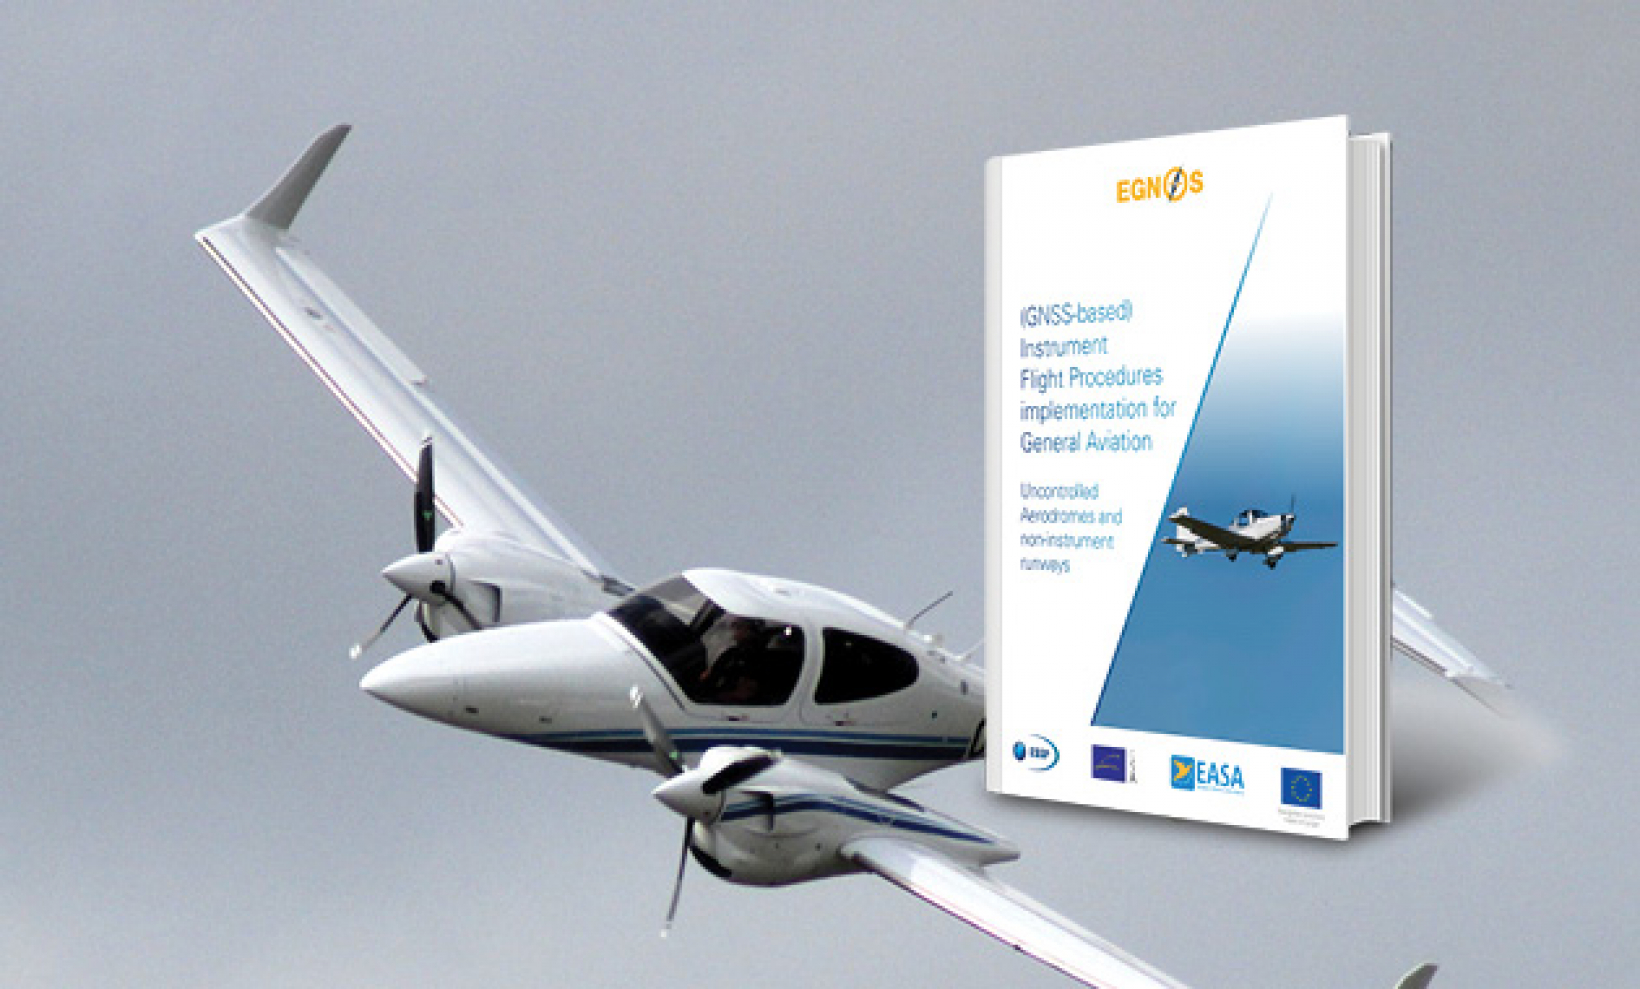 The materials identify blocking points to a wider uptake of EGNOS-based procedures in general aviation